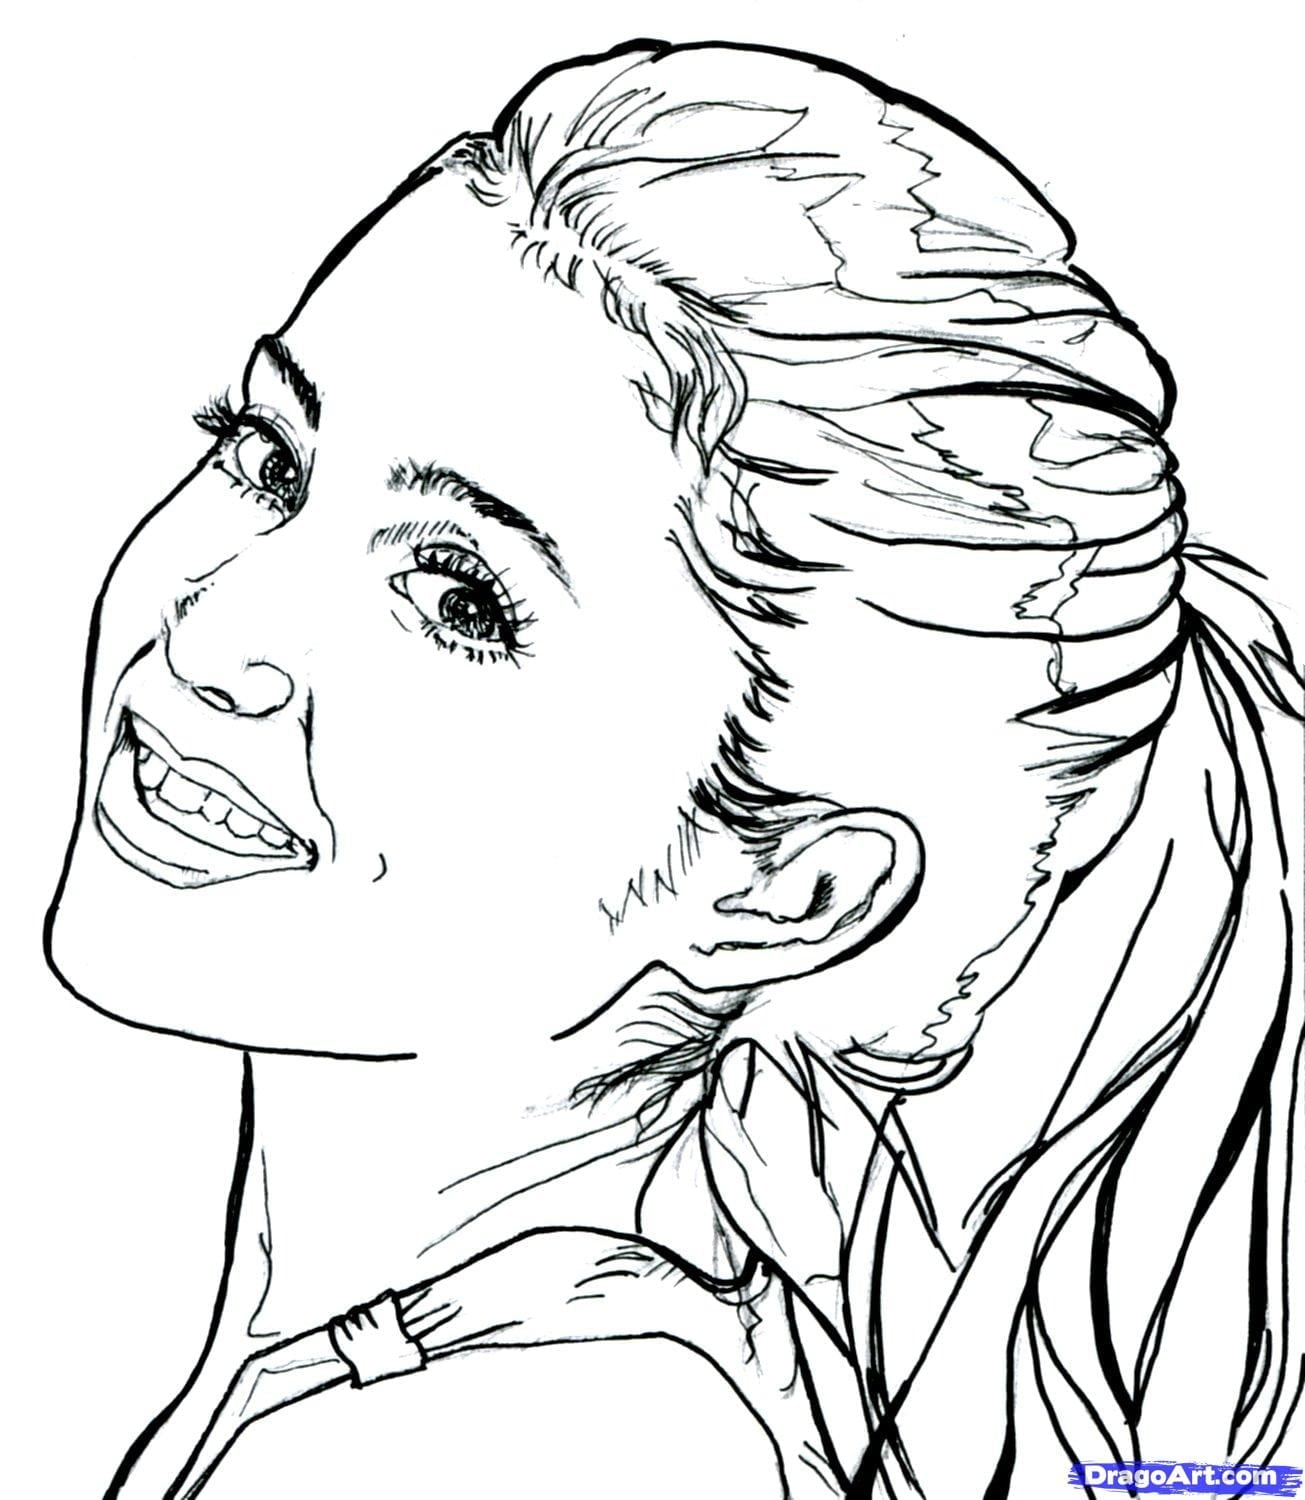 Cher Lloyd Celebrity Coloring Pages Printable Inside